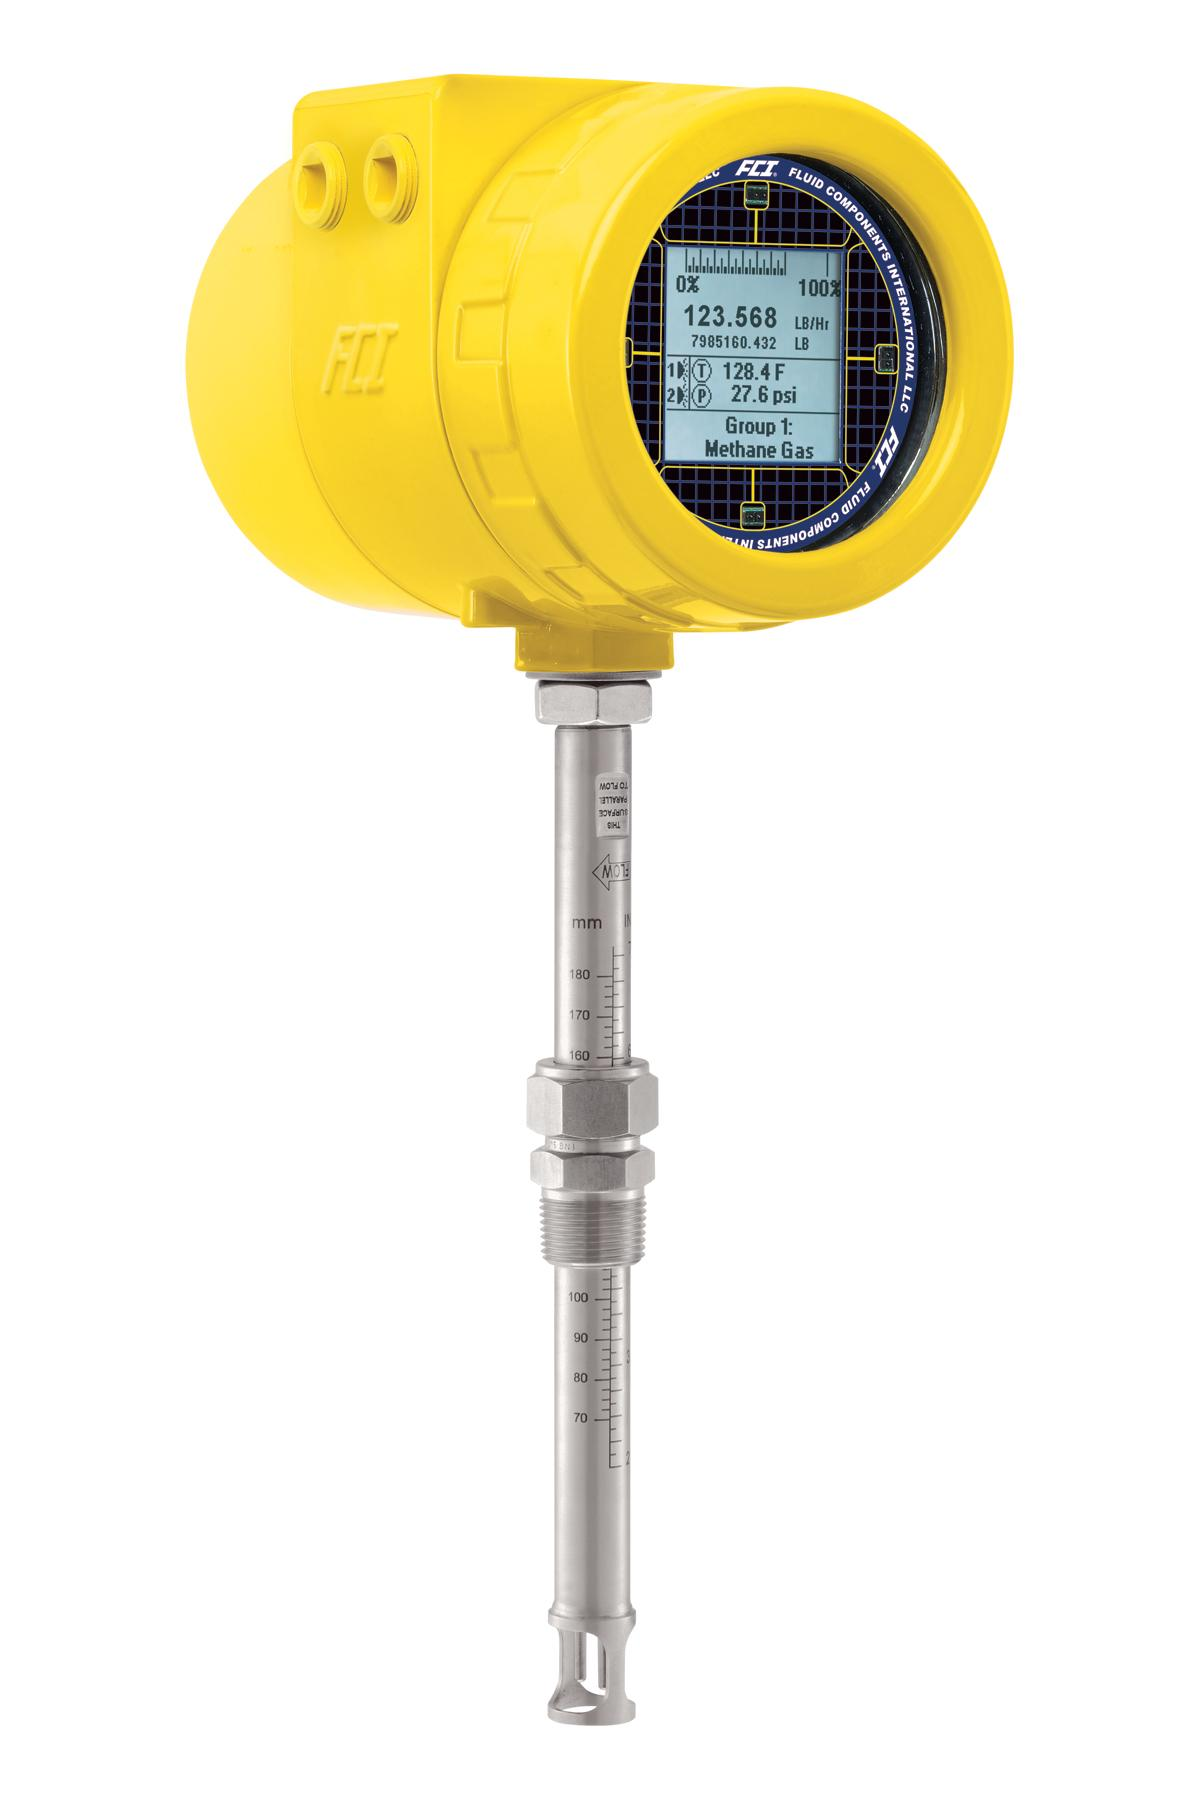 The ST100 Thermal Flow Meter is used at CCGT power plants across the world